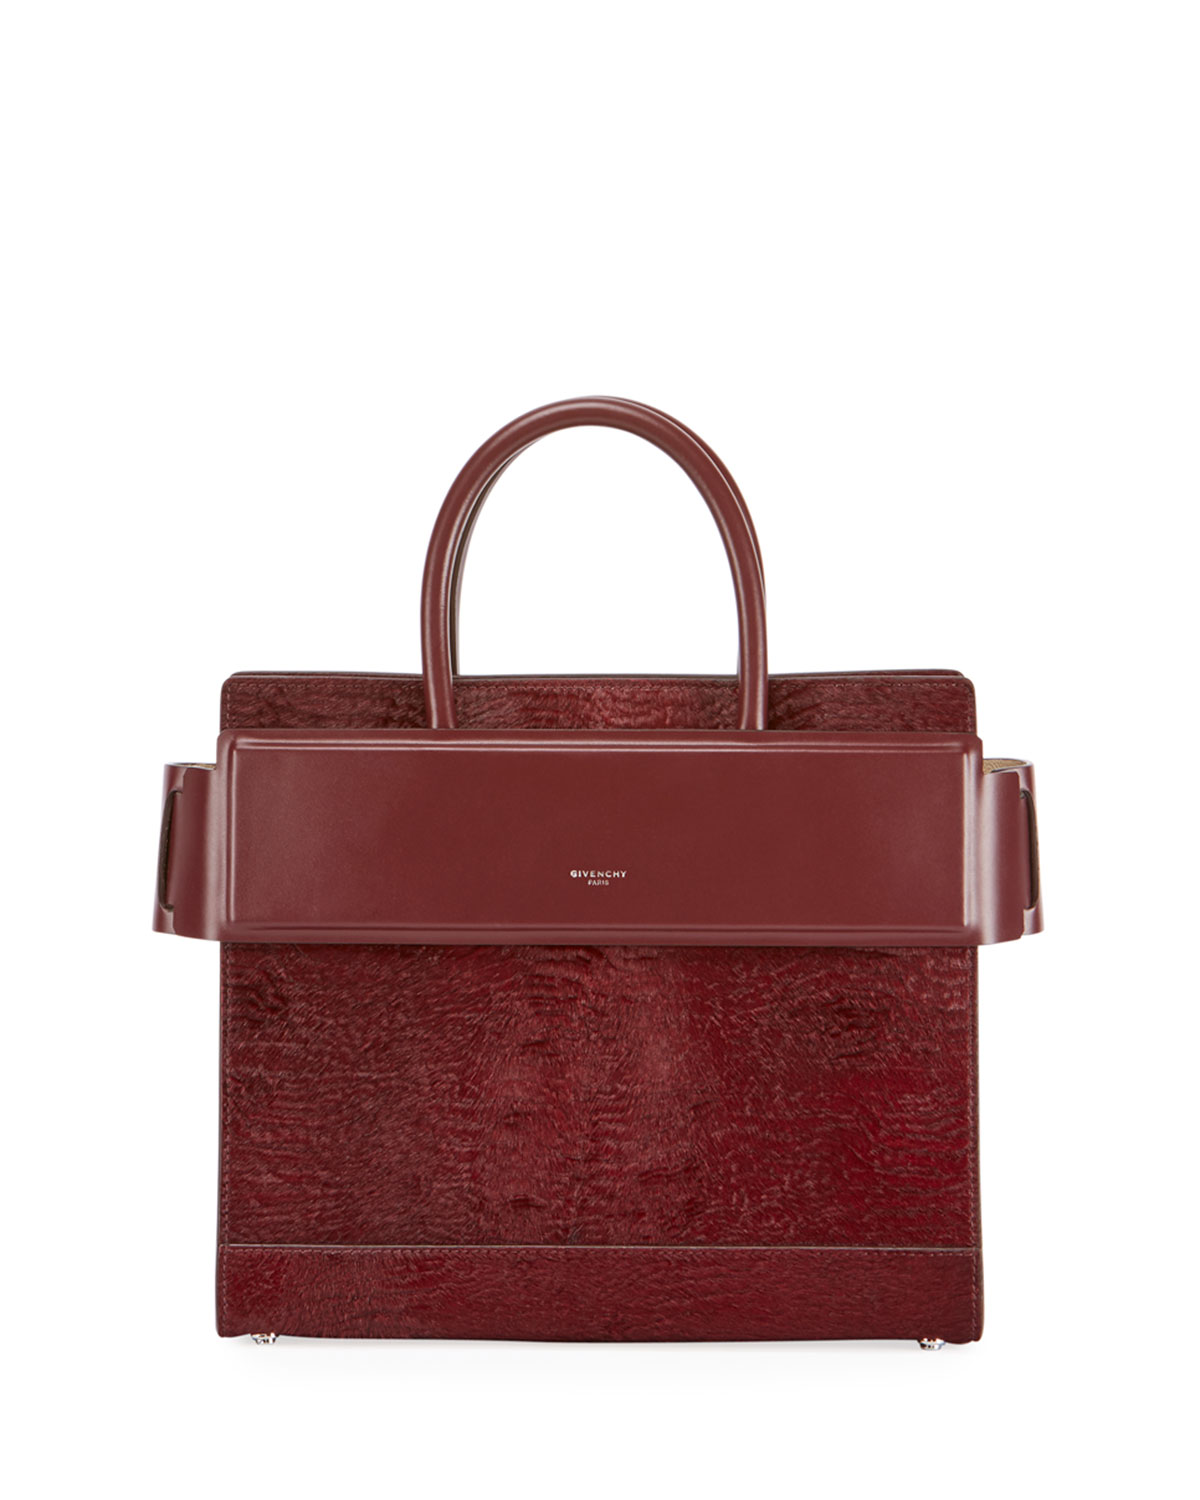 4aa531170f Givenchy Horizon Small Astrakhan-Embossed Leather Satchel Bag